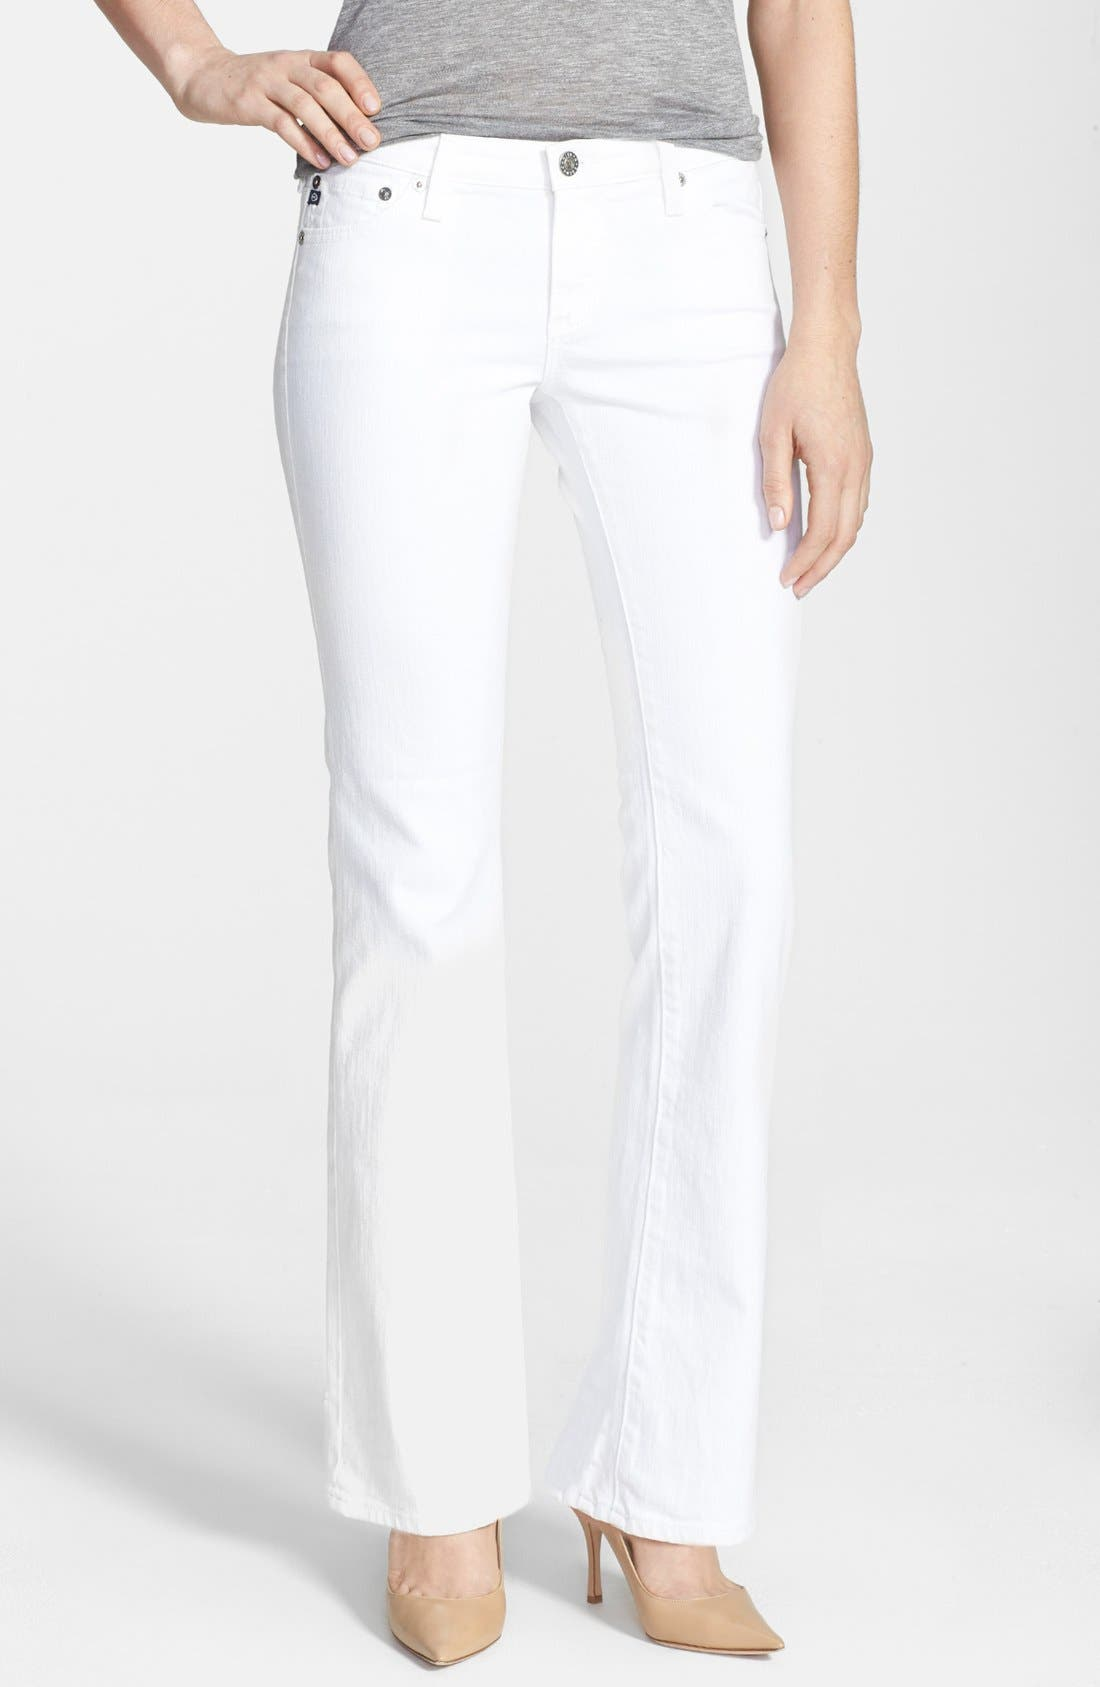 AG 'Angelina' Bootcut Jeans (Petite) (White) | Nordstrom